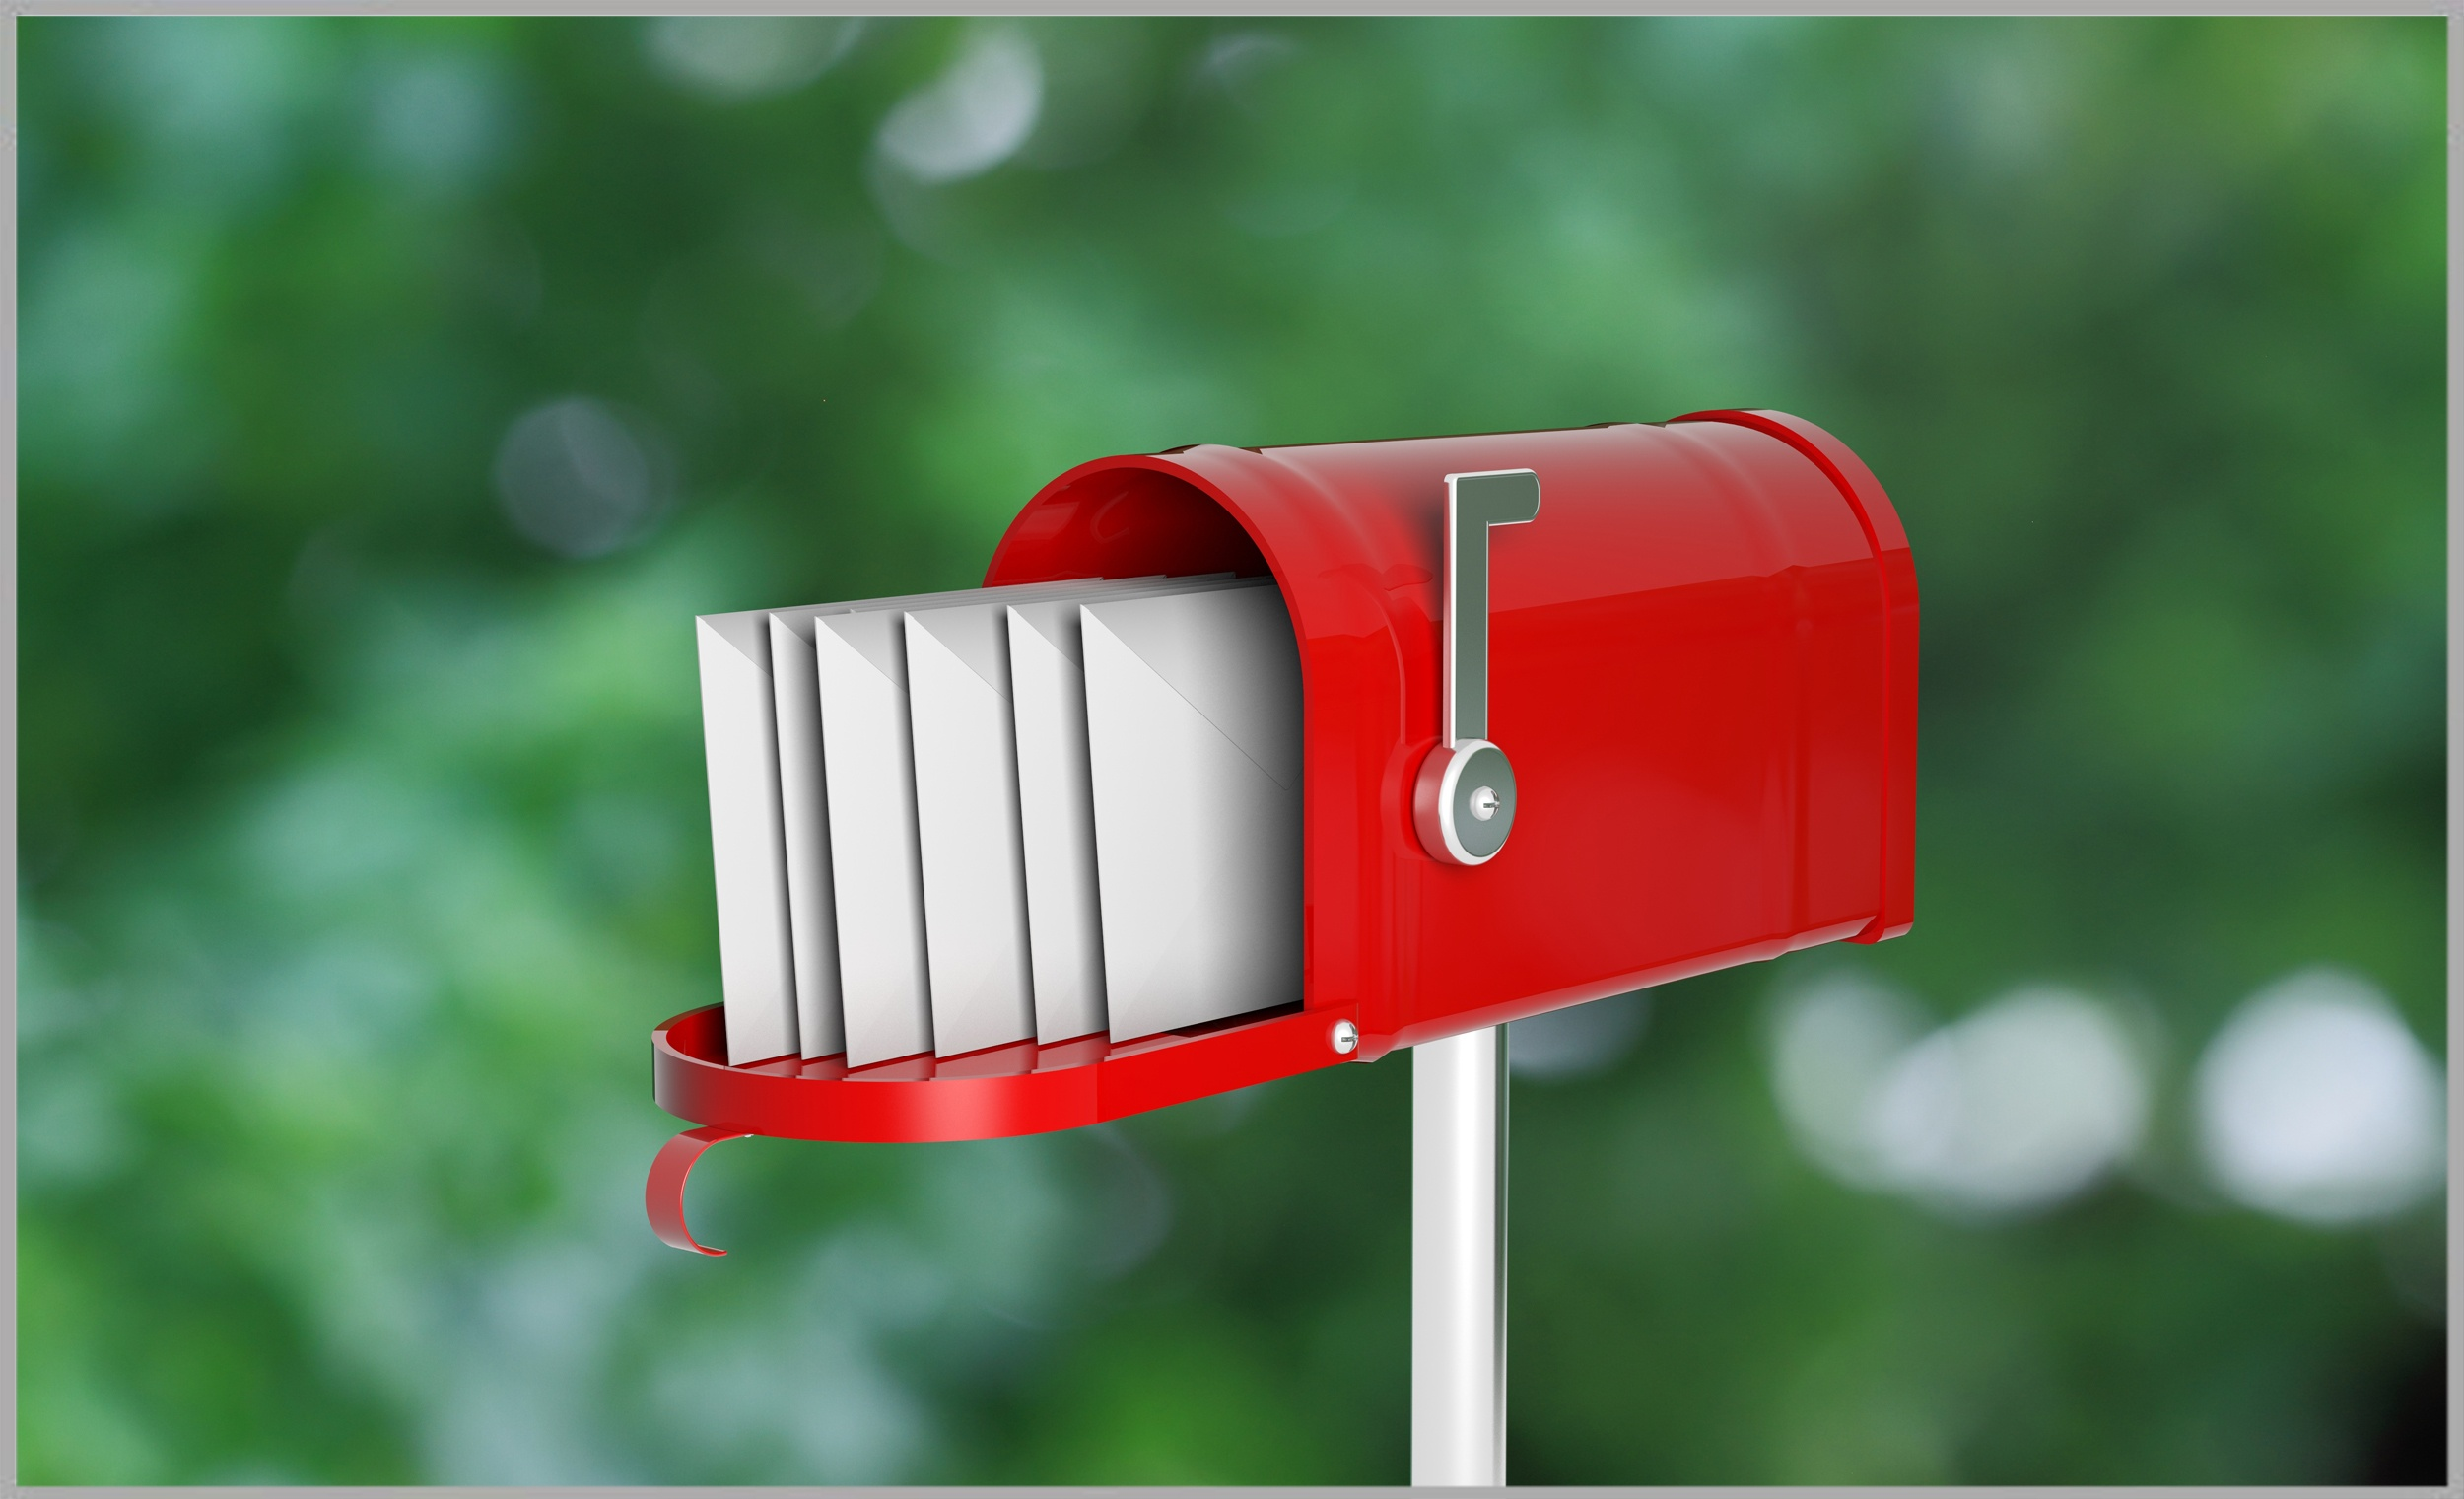 Mistakes let down new malware phishing email impersonating Australia Post MailGuard feature.jpg